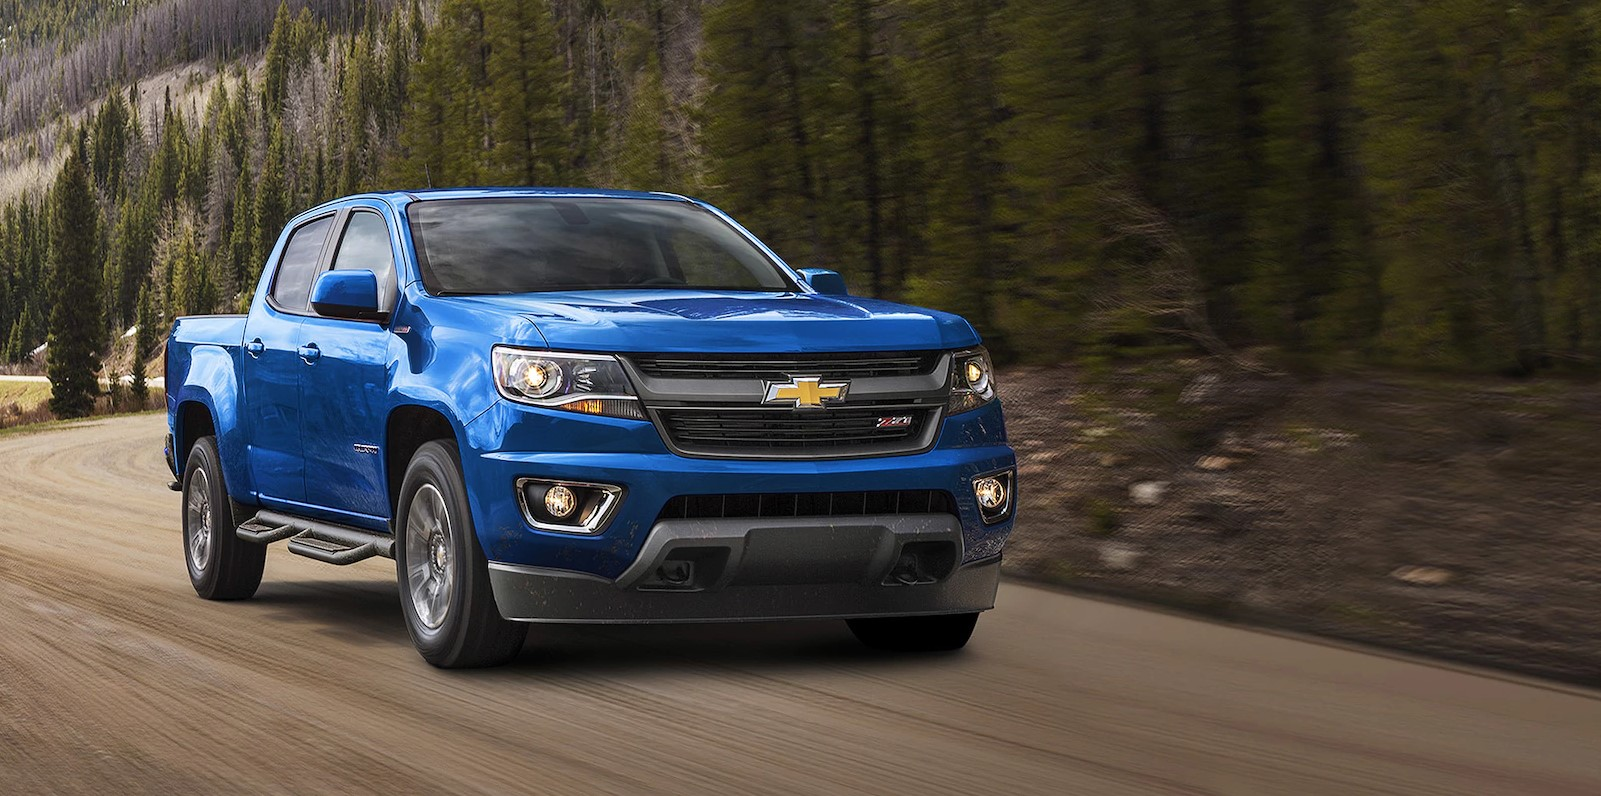 2018 Chevrolet Colorado Front Blue Exterior